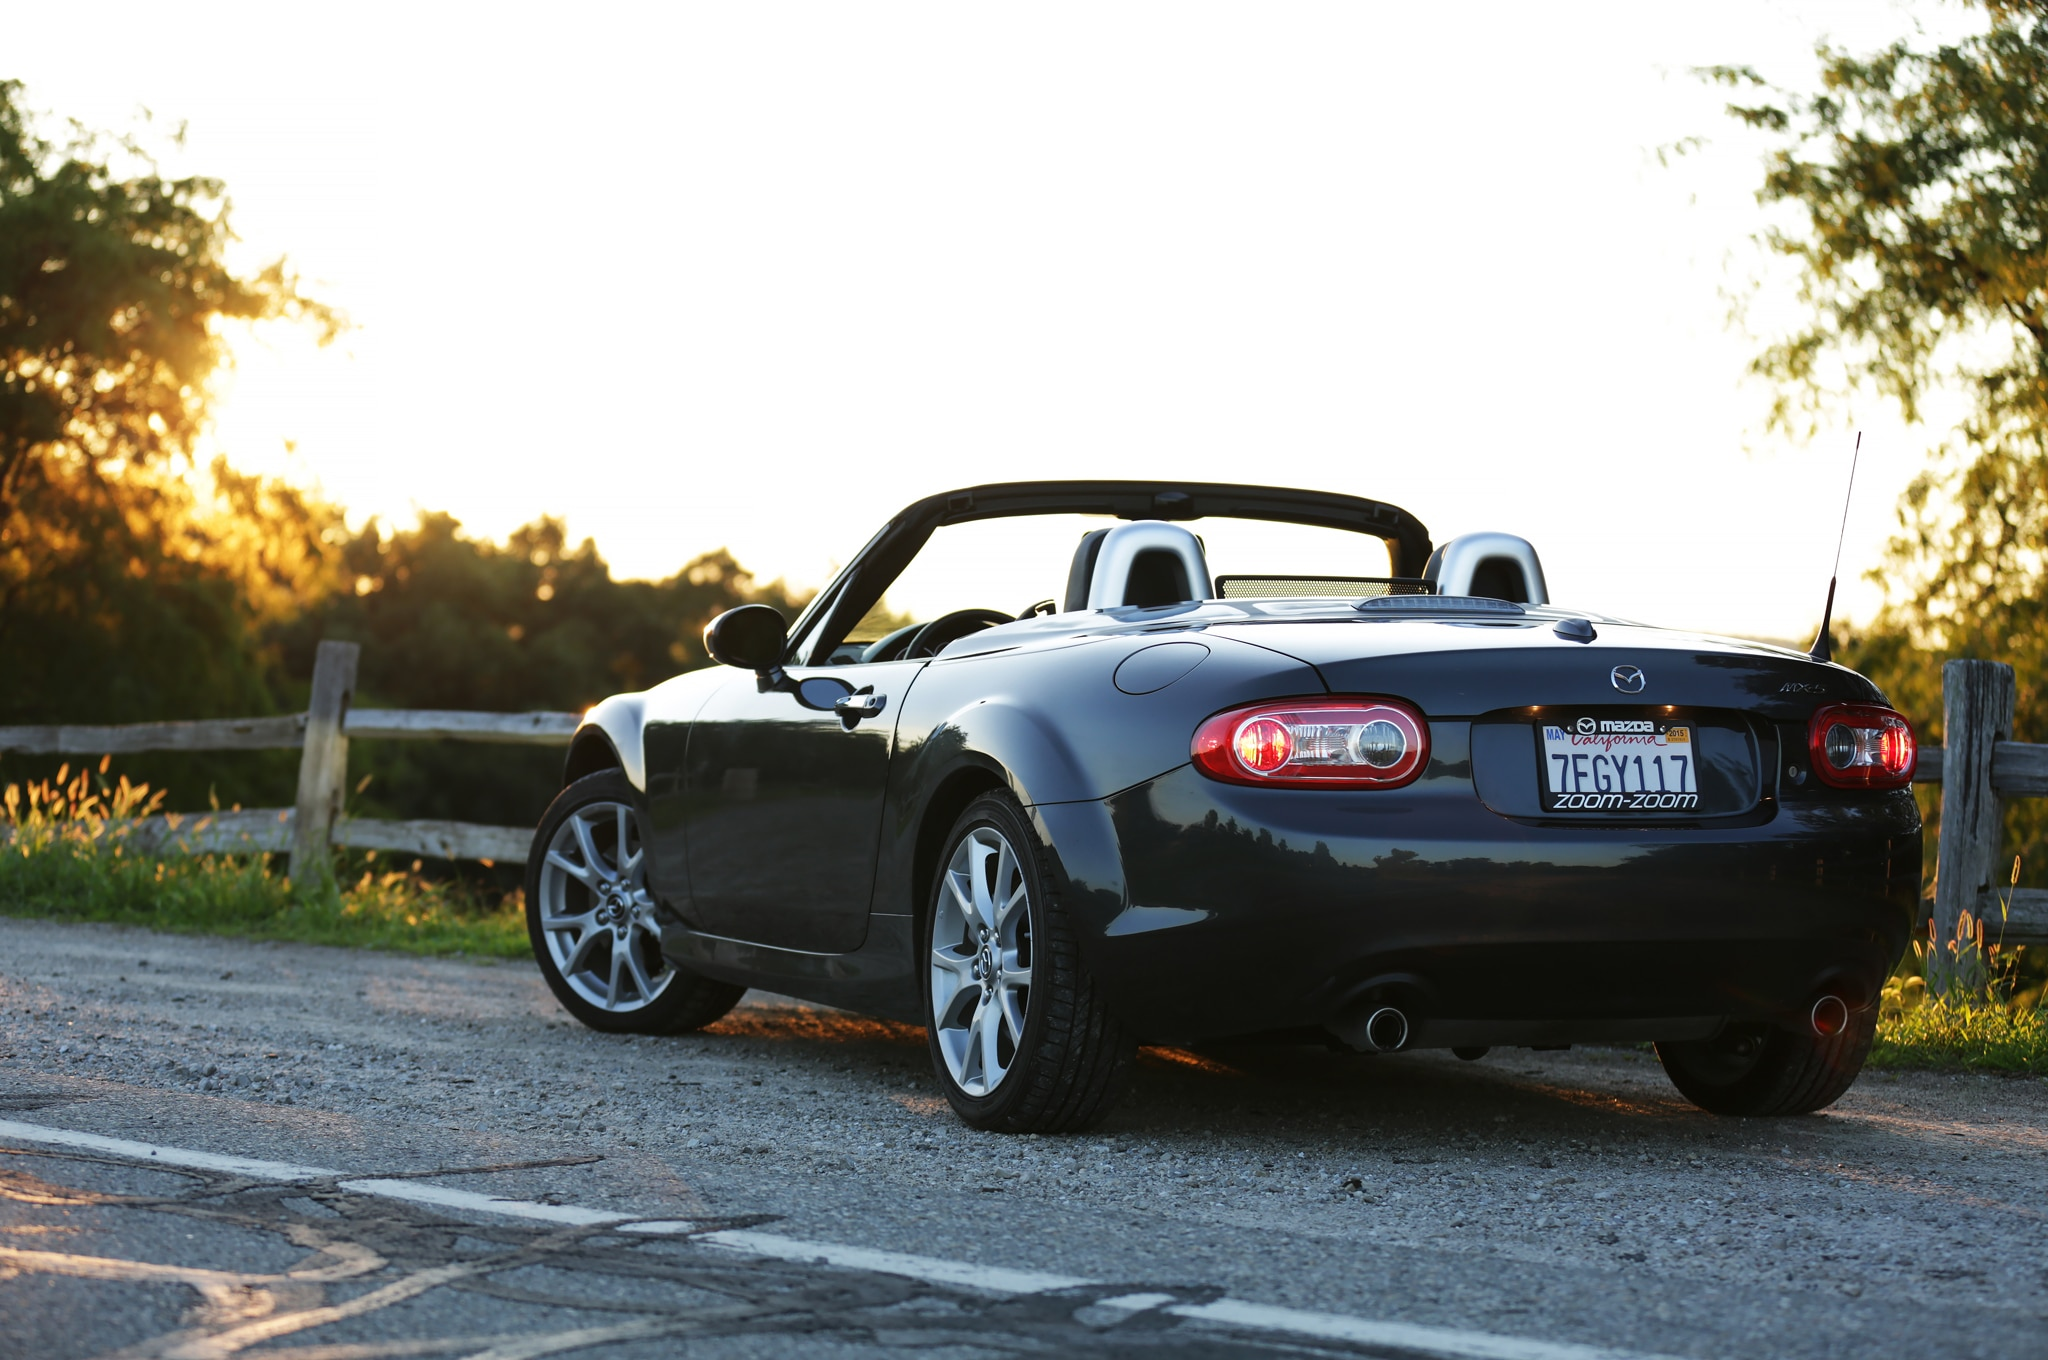 2014 Mazda MX 5 Miata Grand Touring PRHT rear end 03 2014 mazda mx 5 miata grand touring prht introduction 2008 Mazda Miata Trim Packages at suagrazia.org